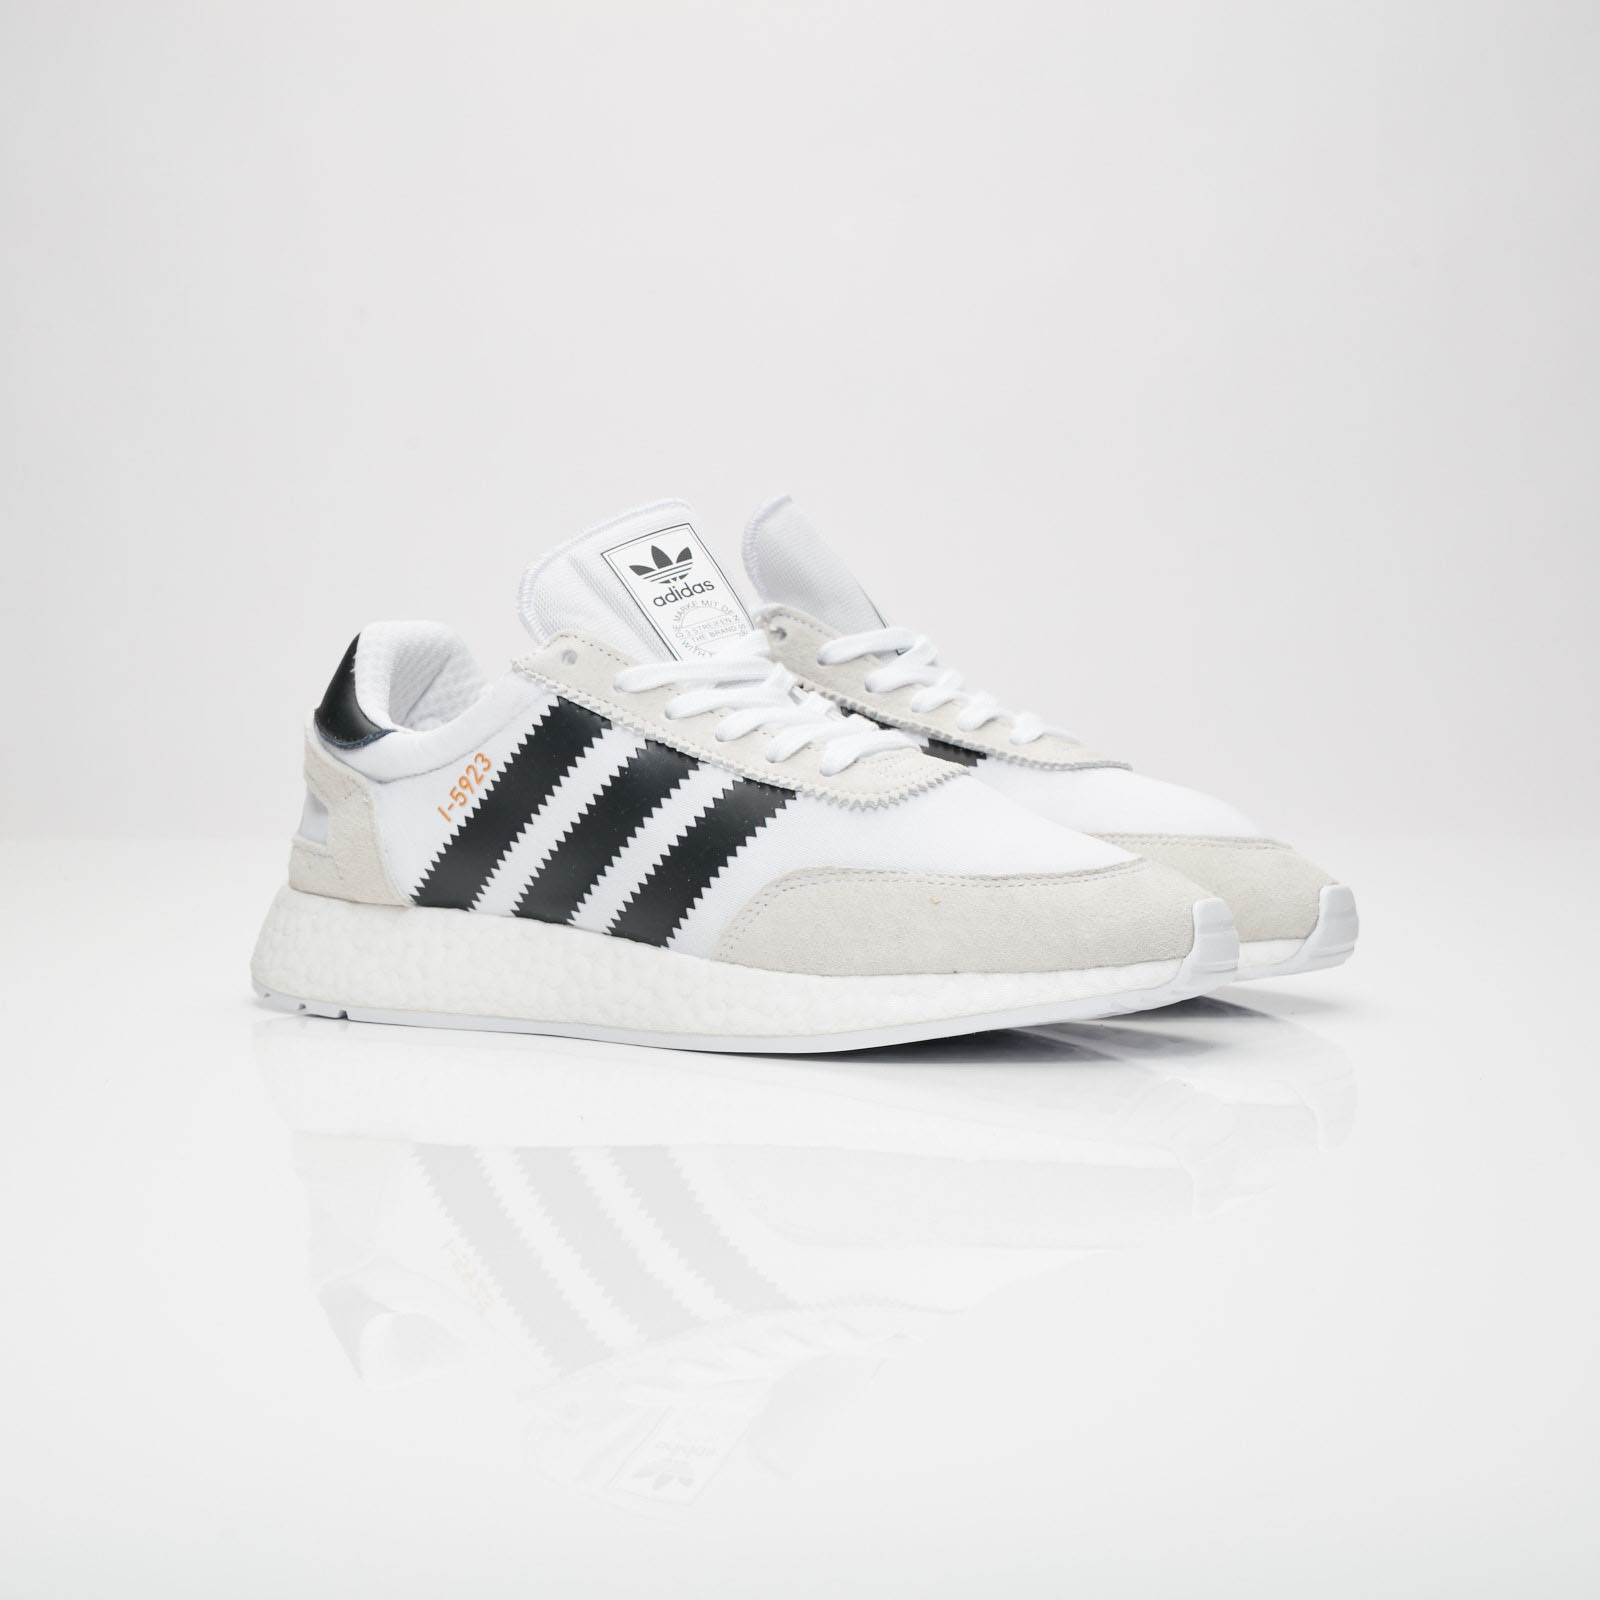 cheap for discount 4723e 3a5bc adidas I-5923 - Cq2489 - Sneakersnstuff  sneakers  streetwea